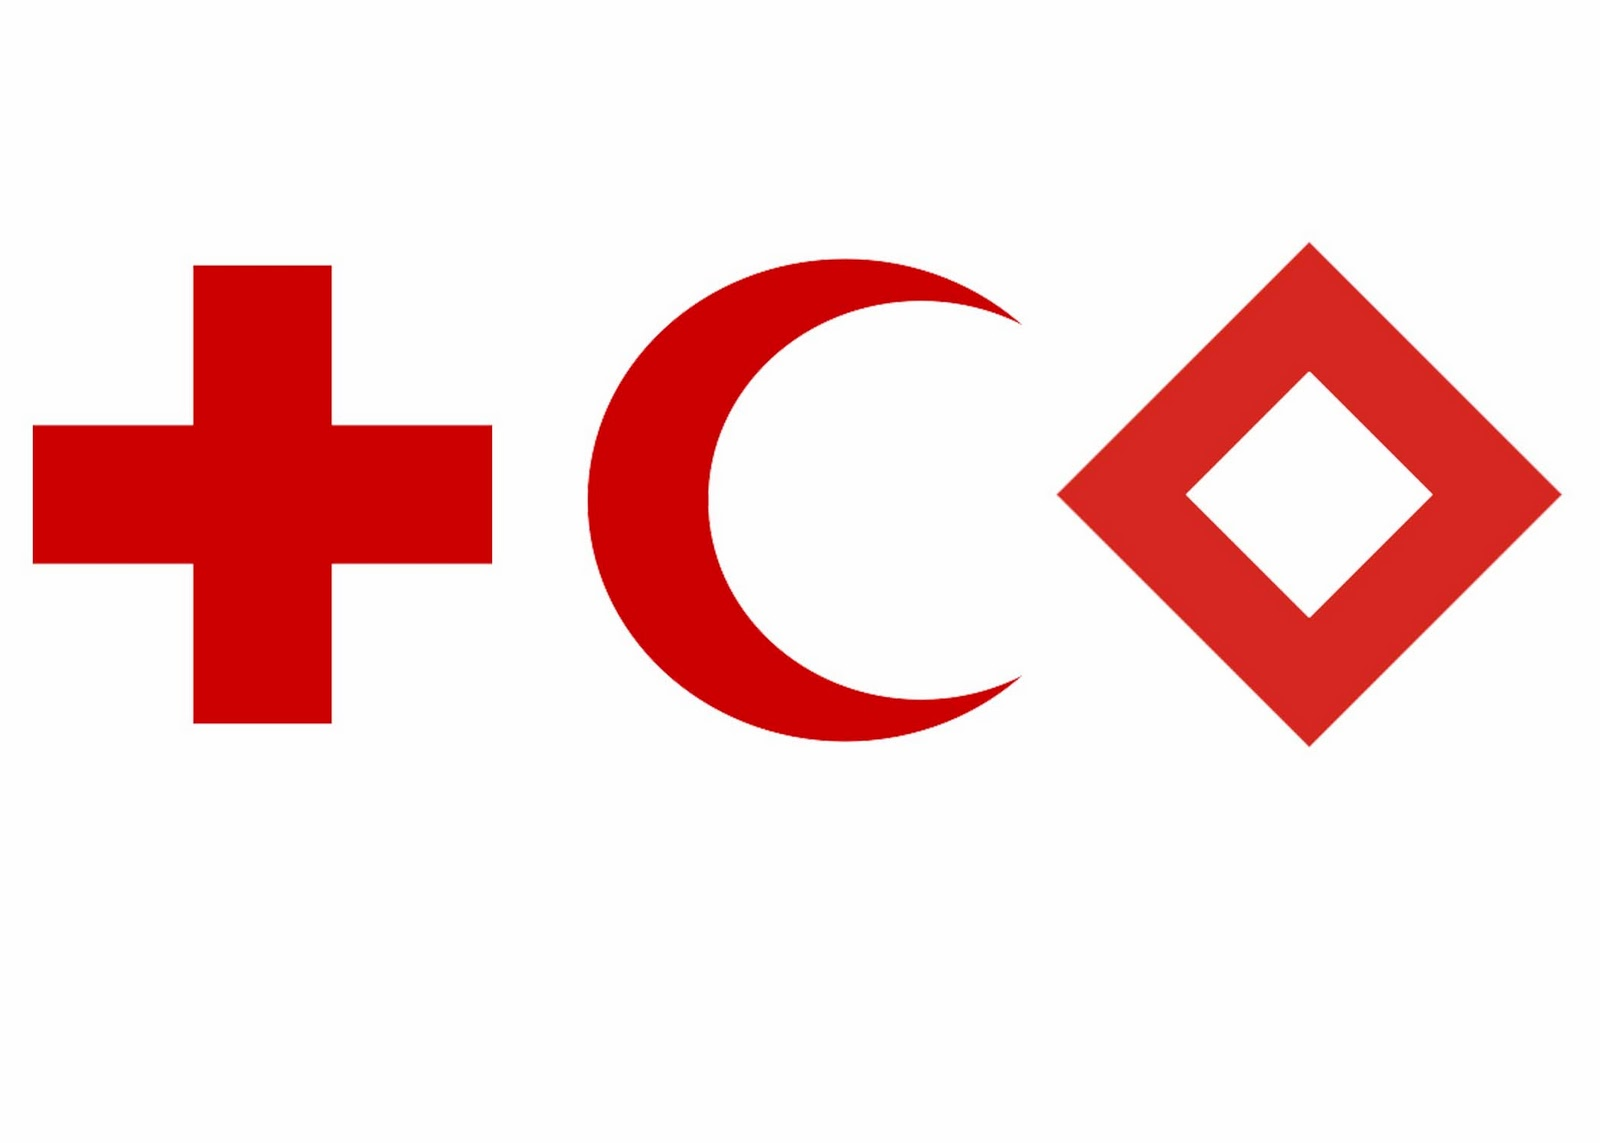 Red Cross Sign - ClipArt Best